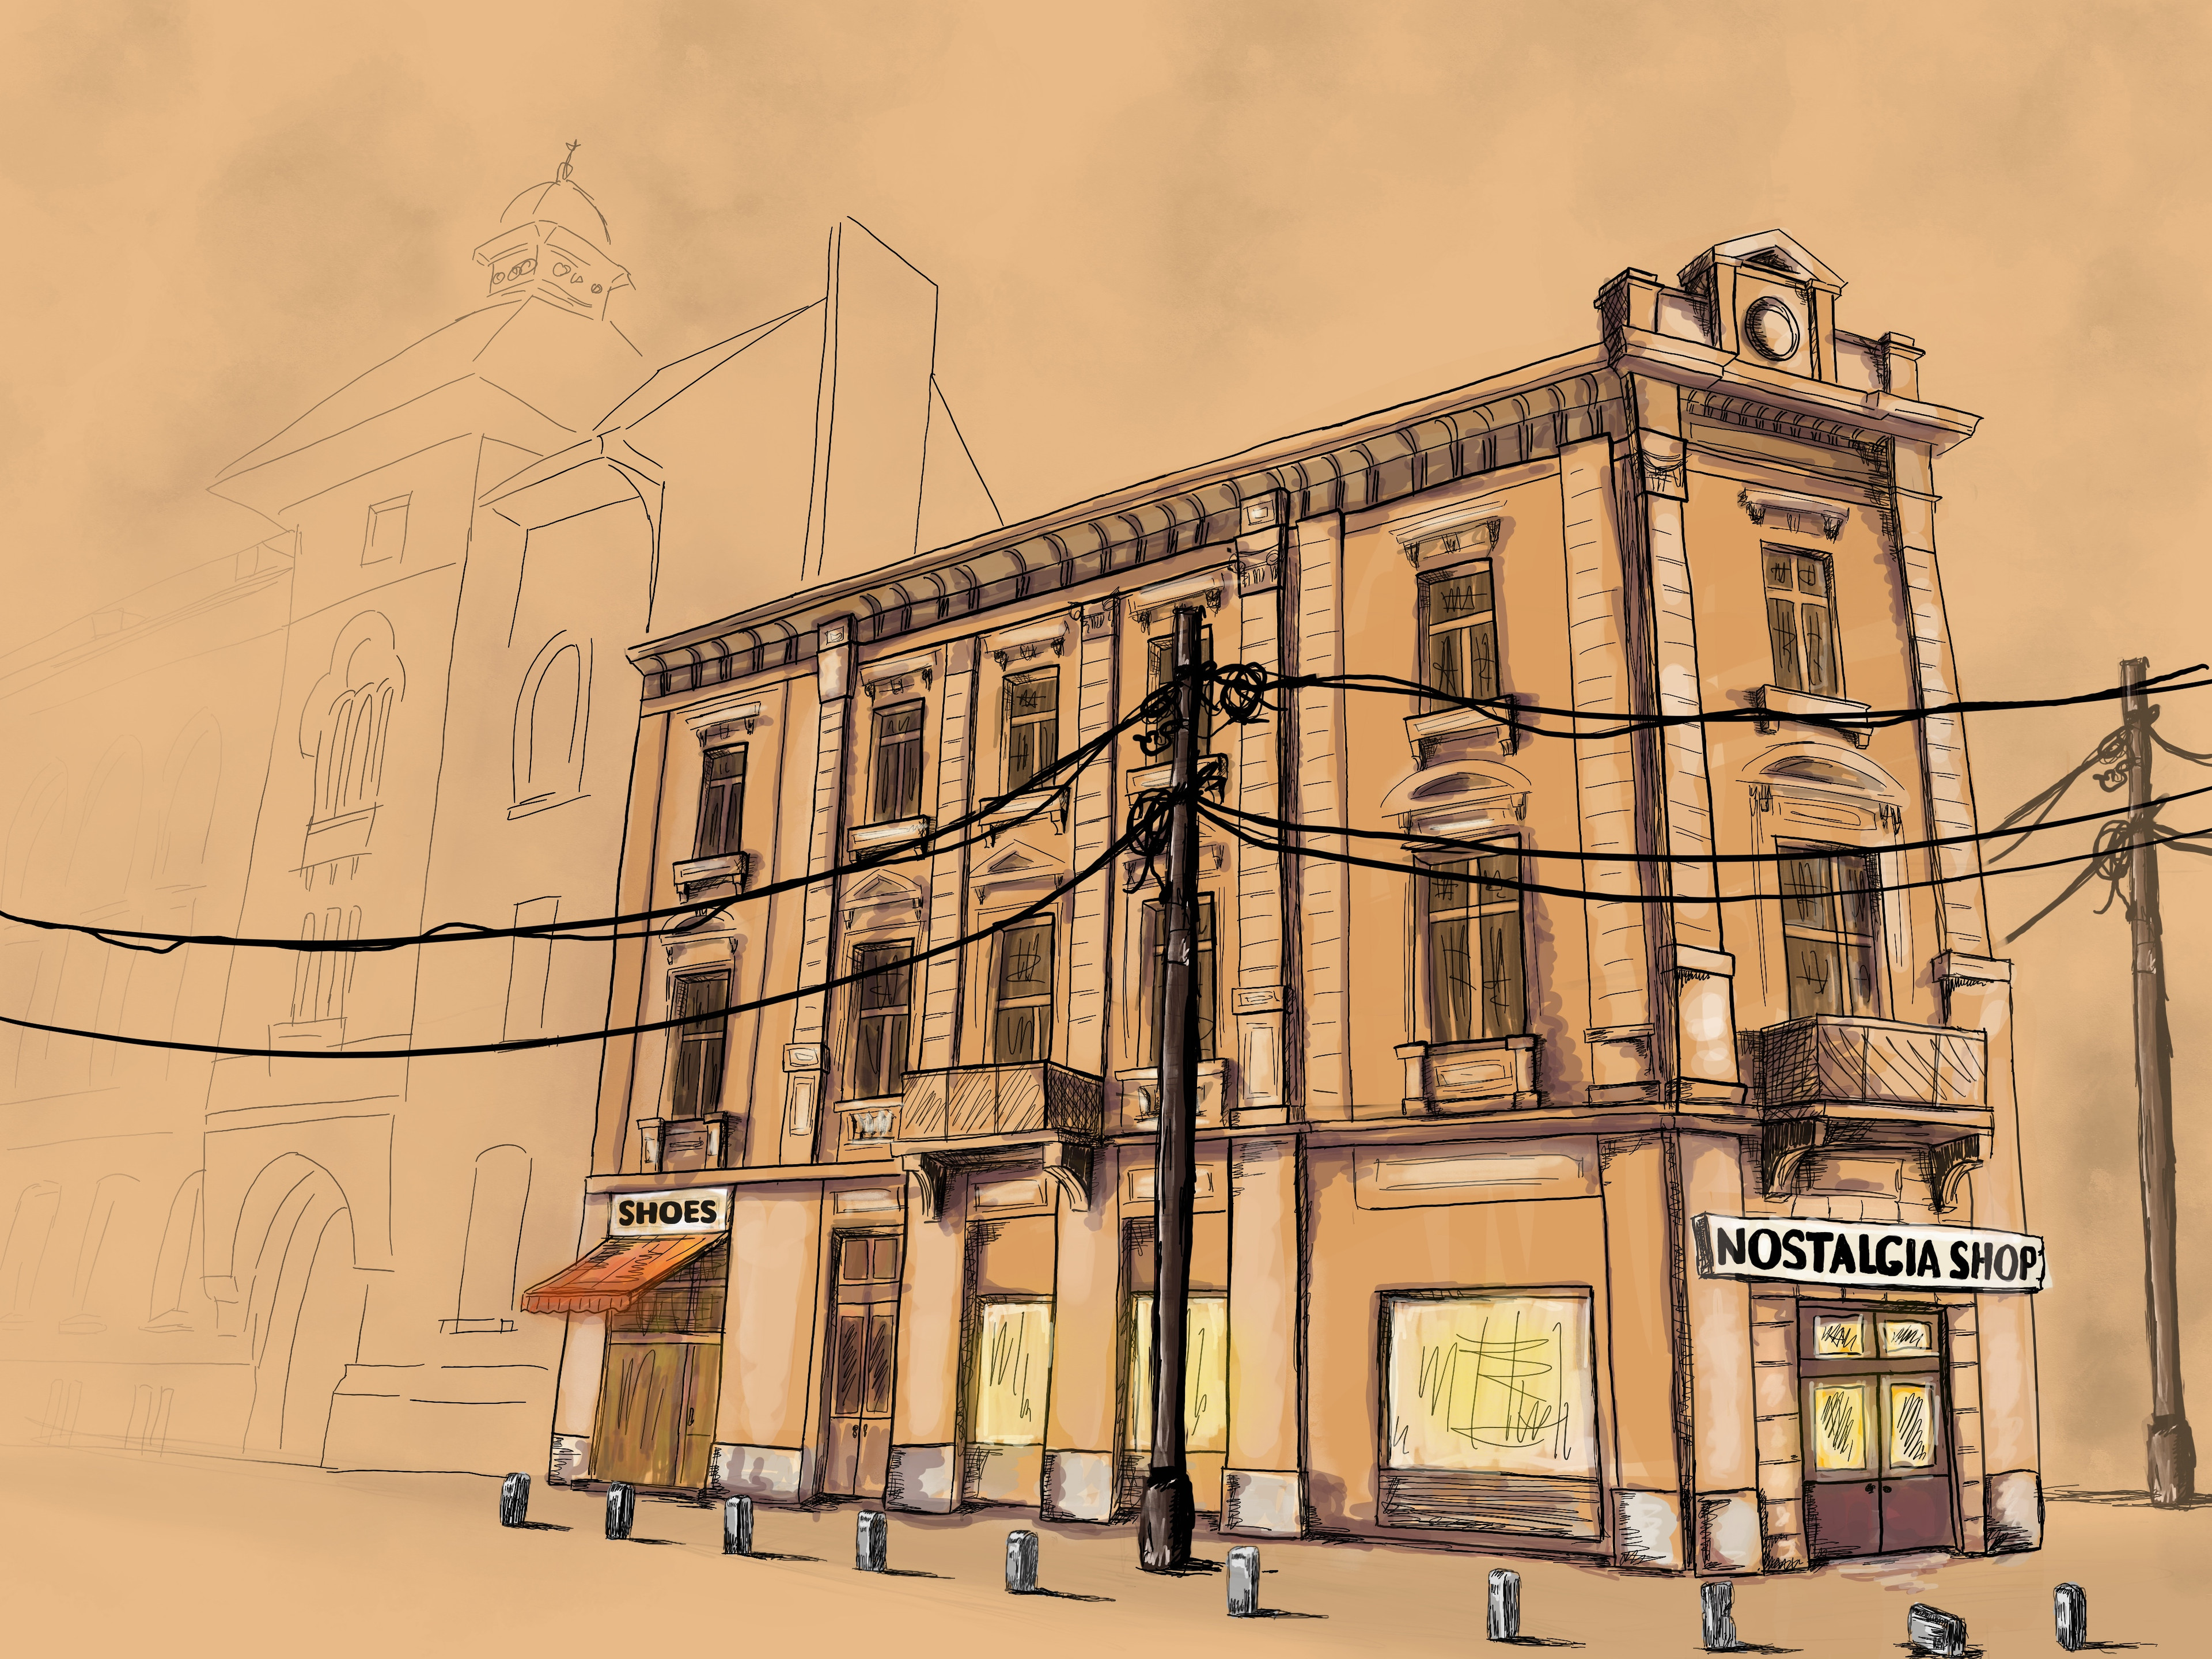 Architectural sketch study